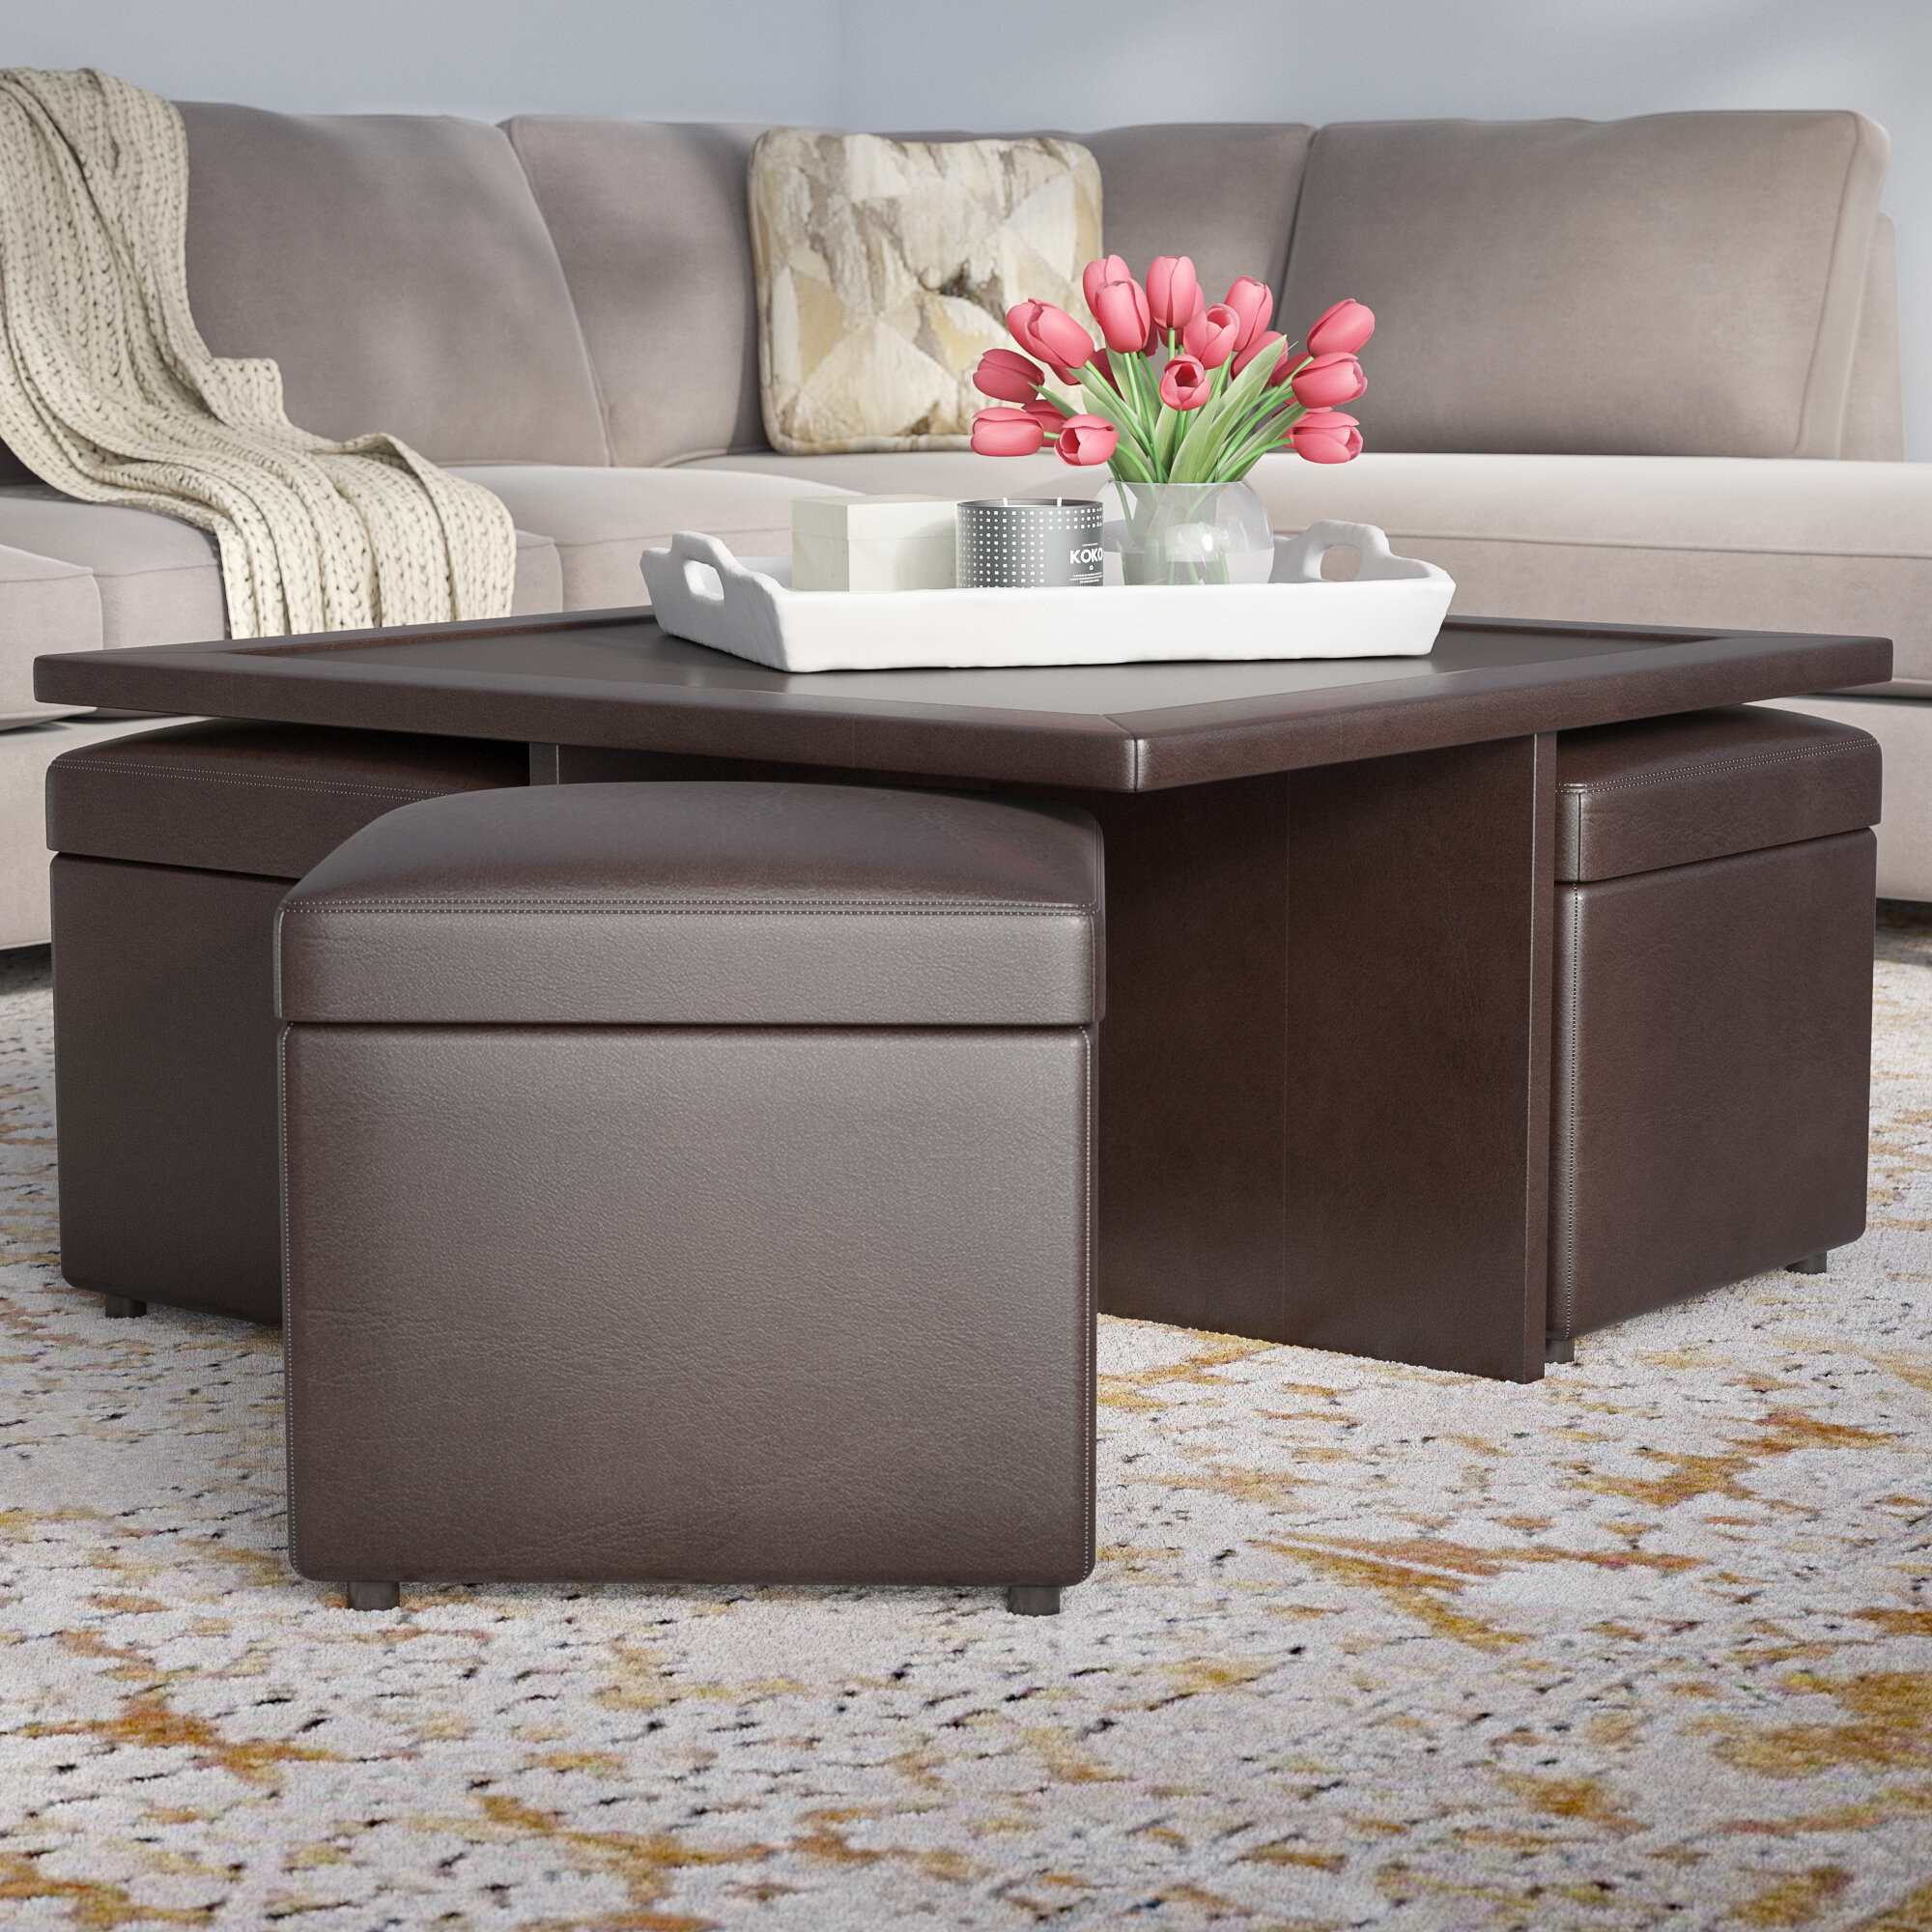 chairs coffee brown stools table homegenic products rogue mystique set with